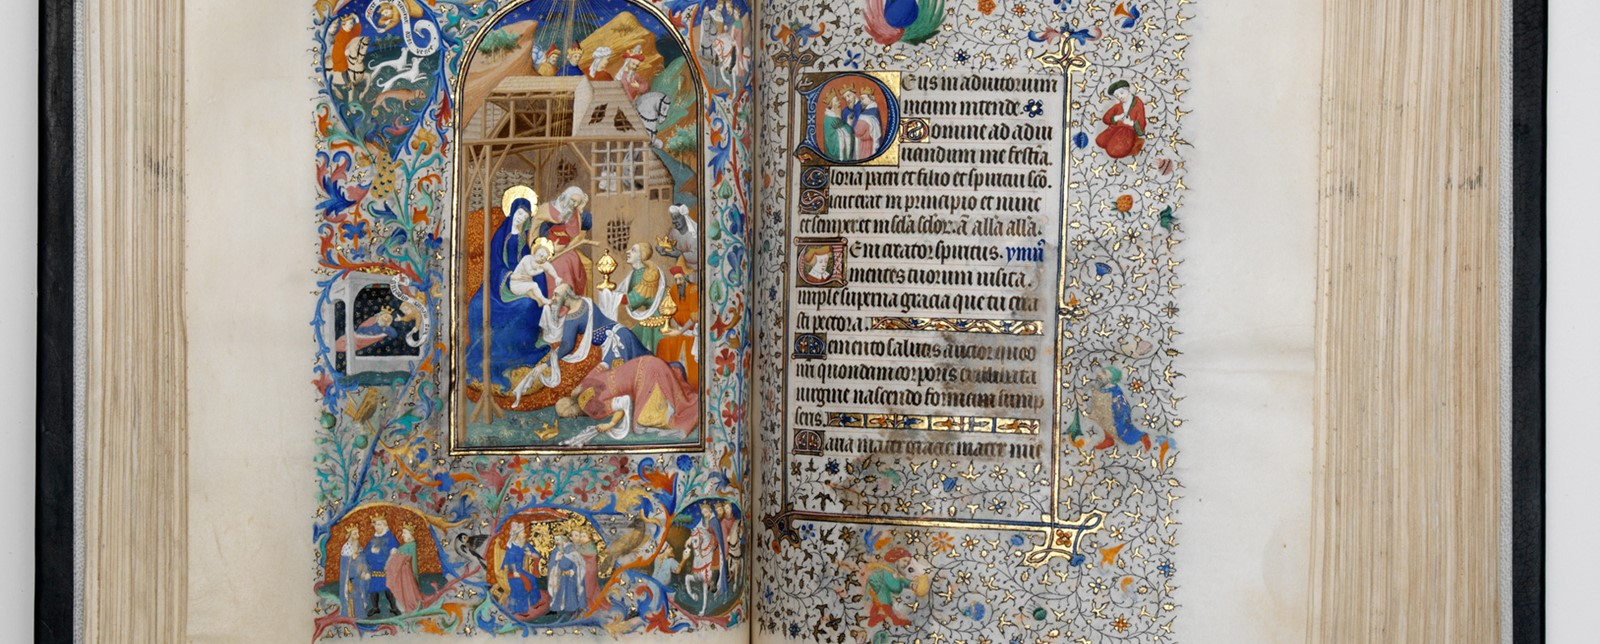 The Book of Hours medieval illuminated manuscript